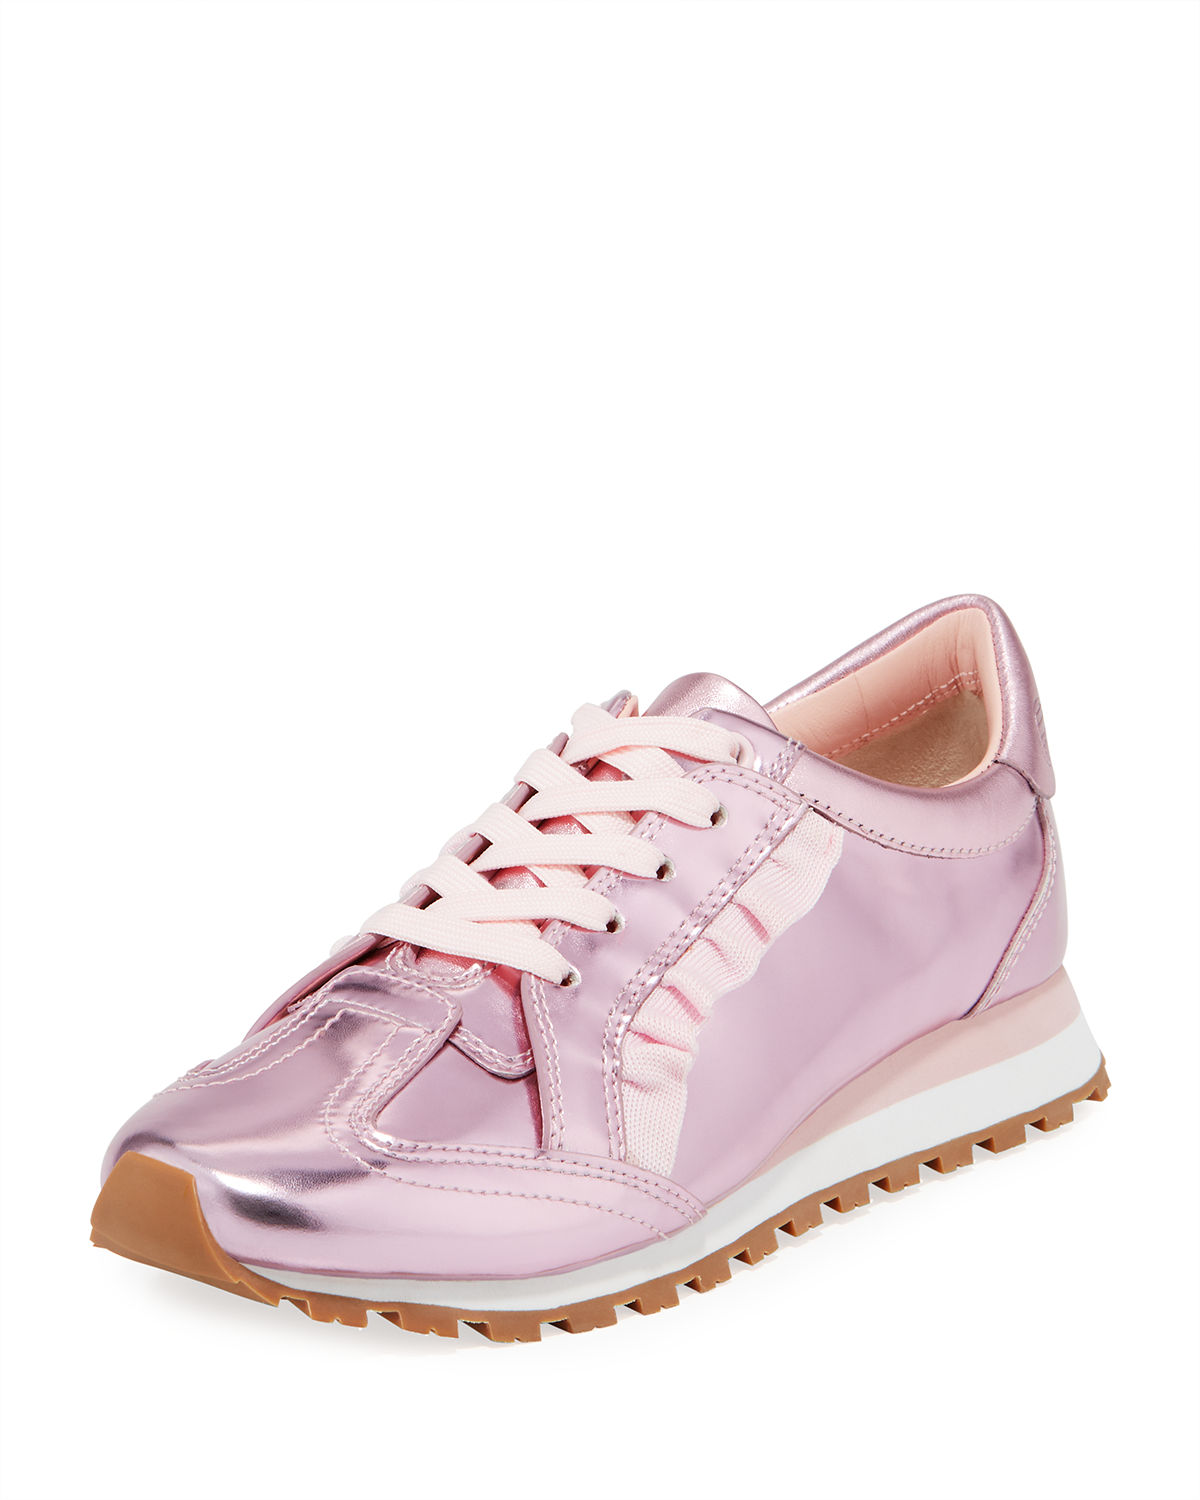 Tory Sport RUFFLED METALLIC LEATHER TRAINER SNEAKERS